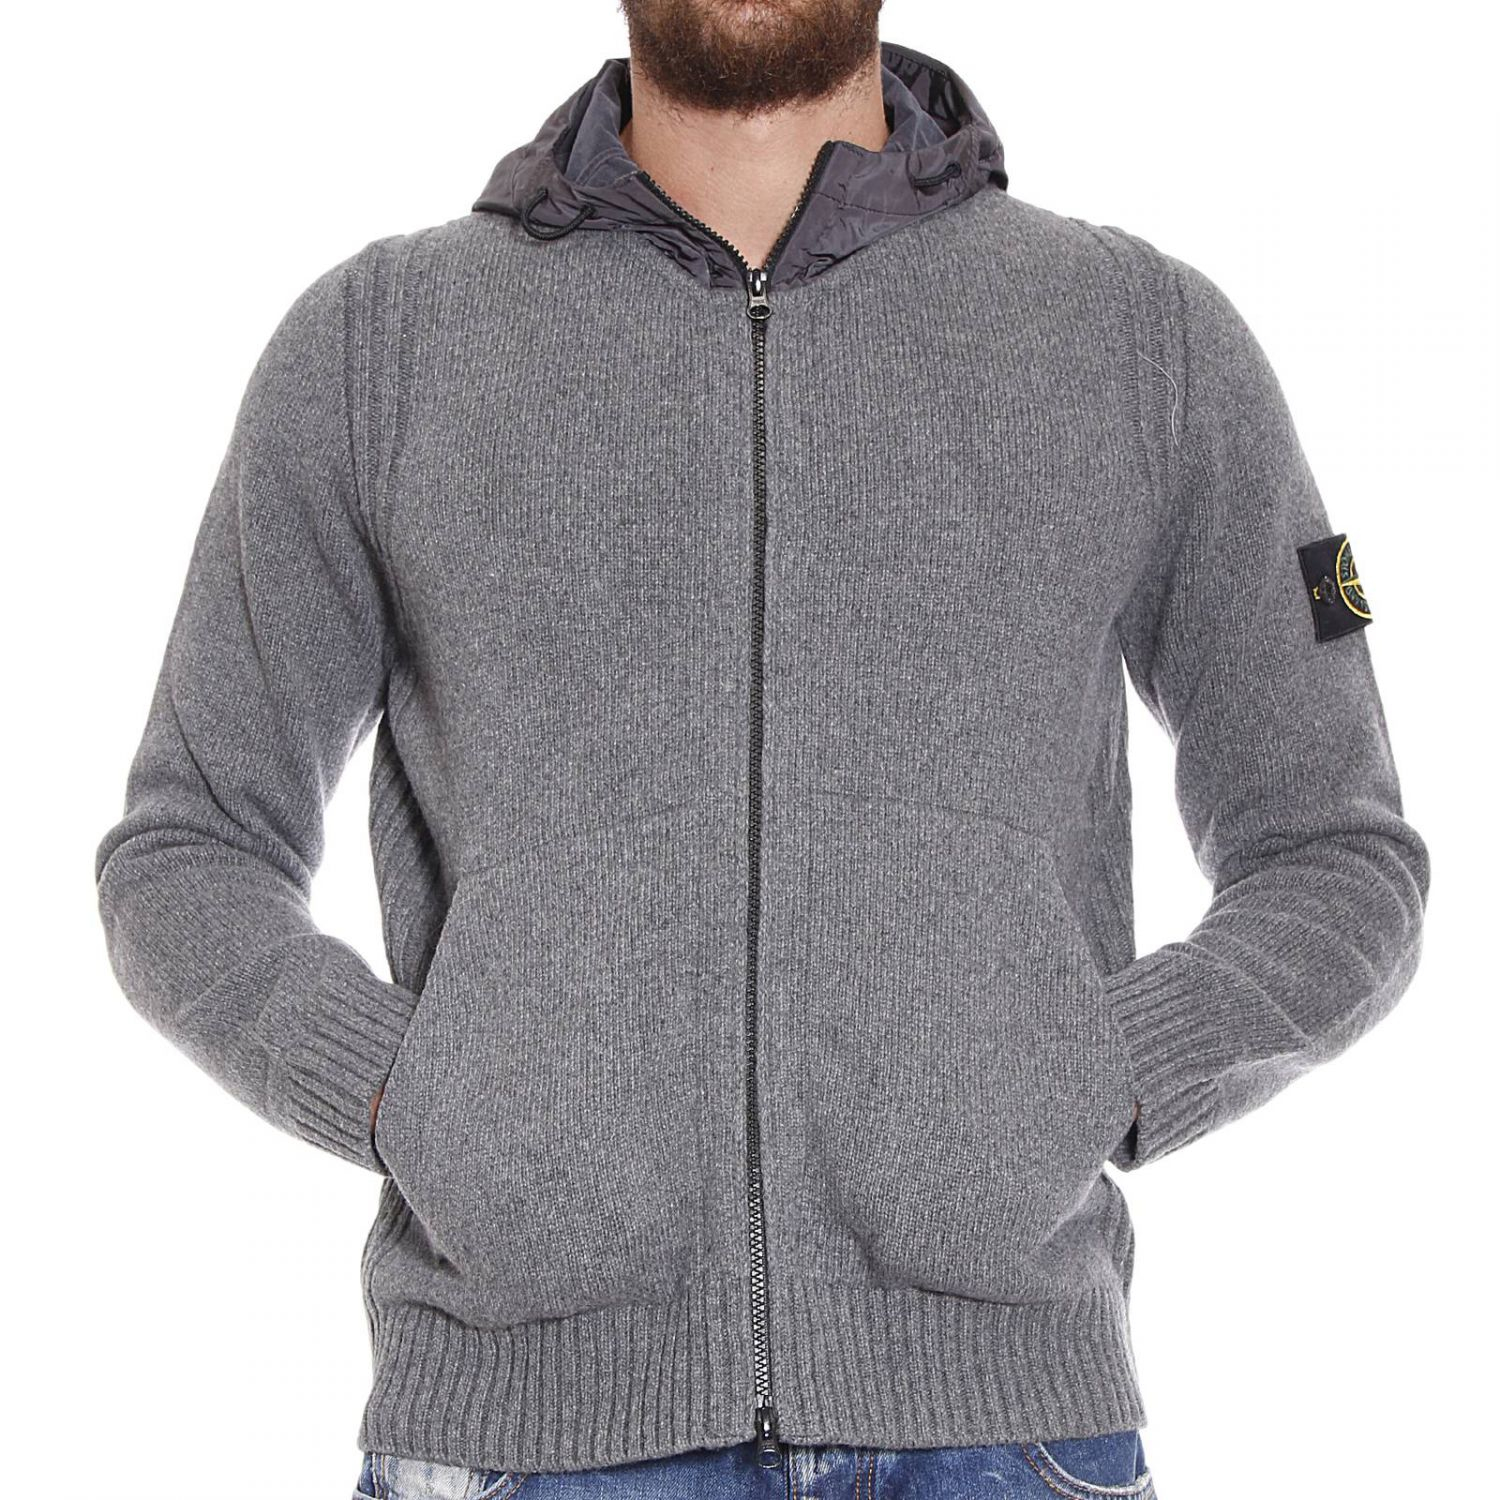 stone island sweater lambswool cardigan with hood in gray for men lyst. Black Bedroom Furniture Sets. Home Design Ideas